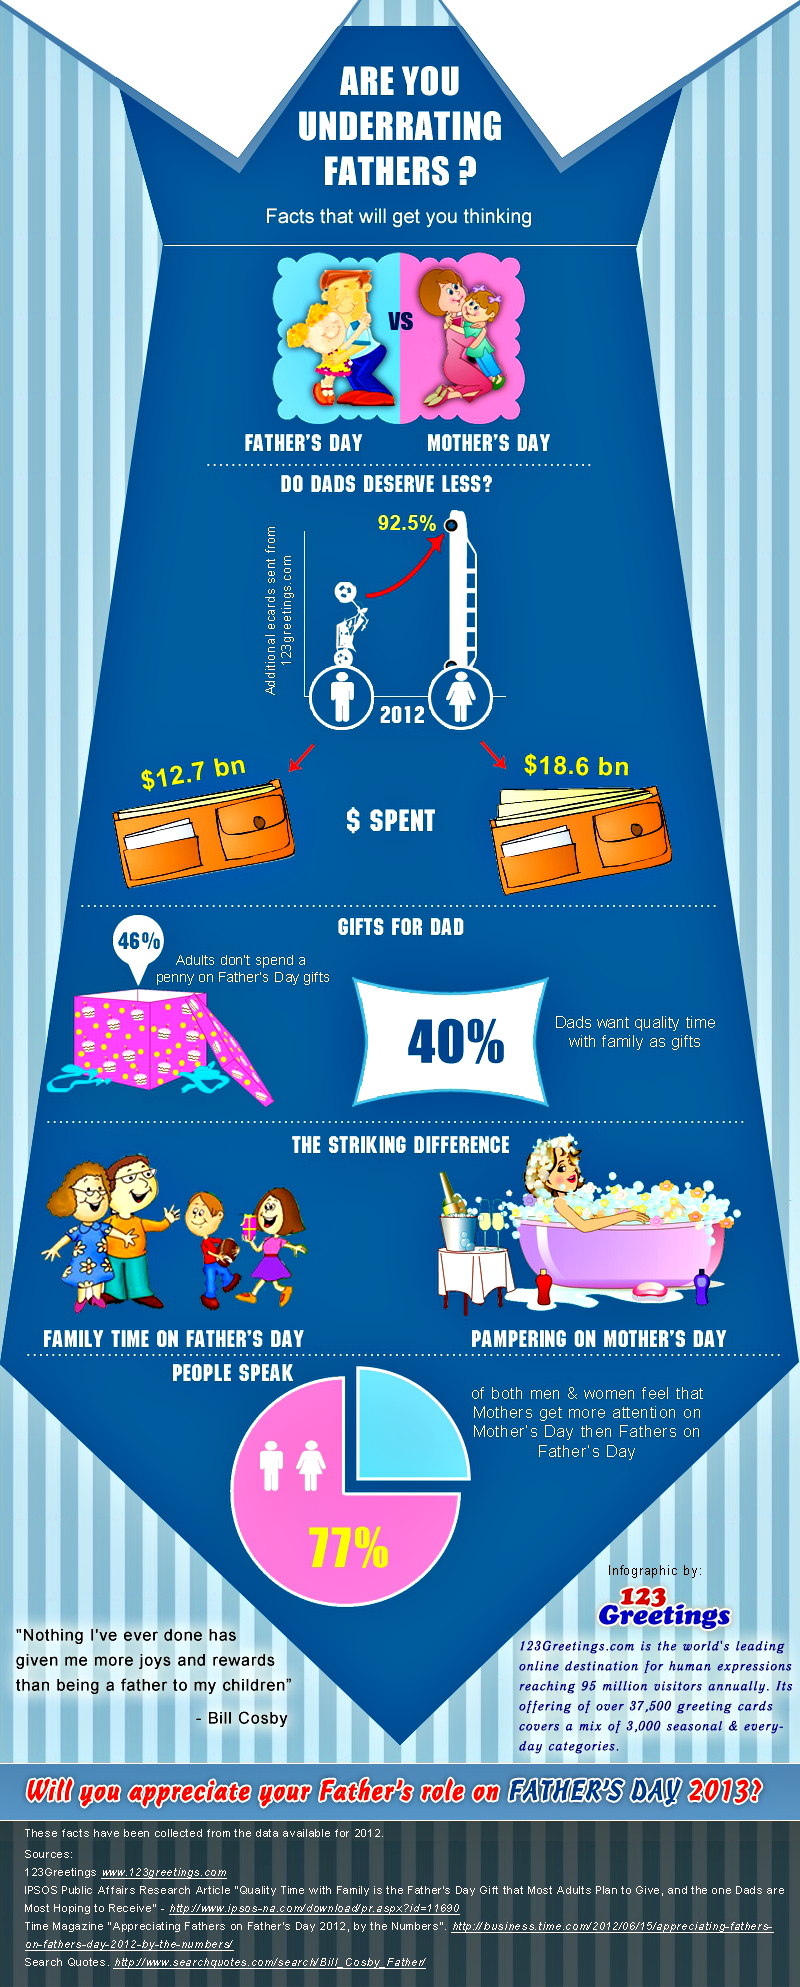 father u0026 39 s day infographic release by 123greetings com  are fathers underrated